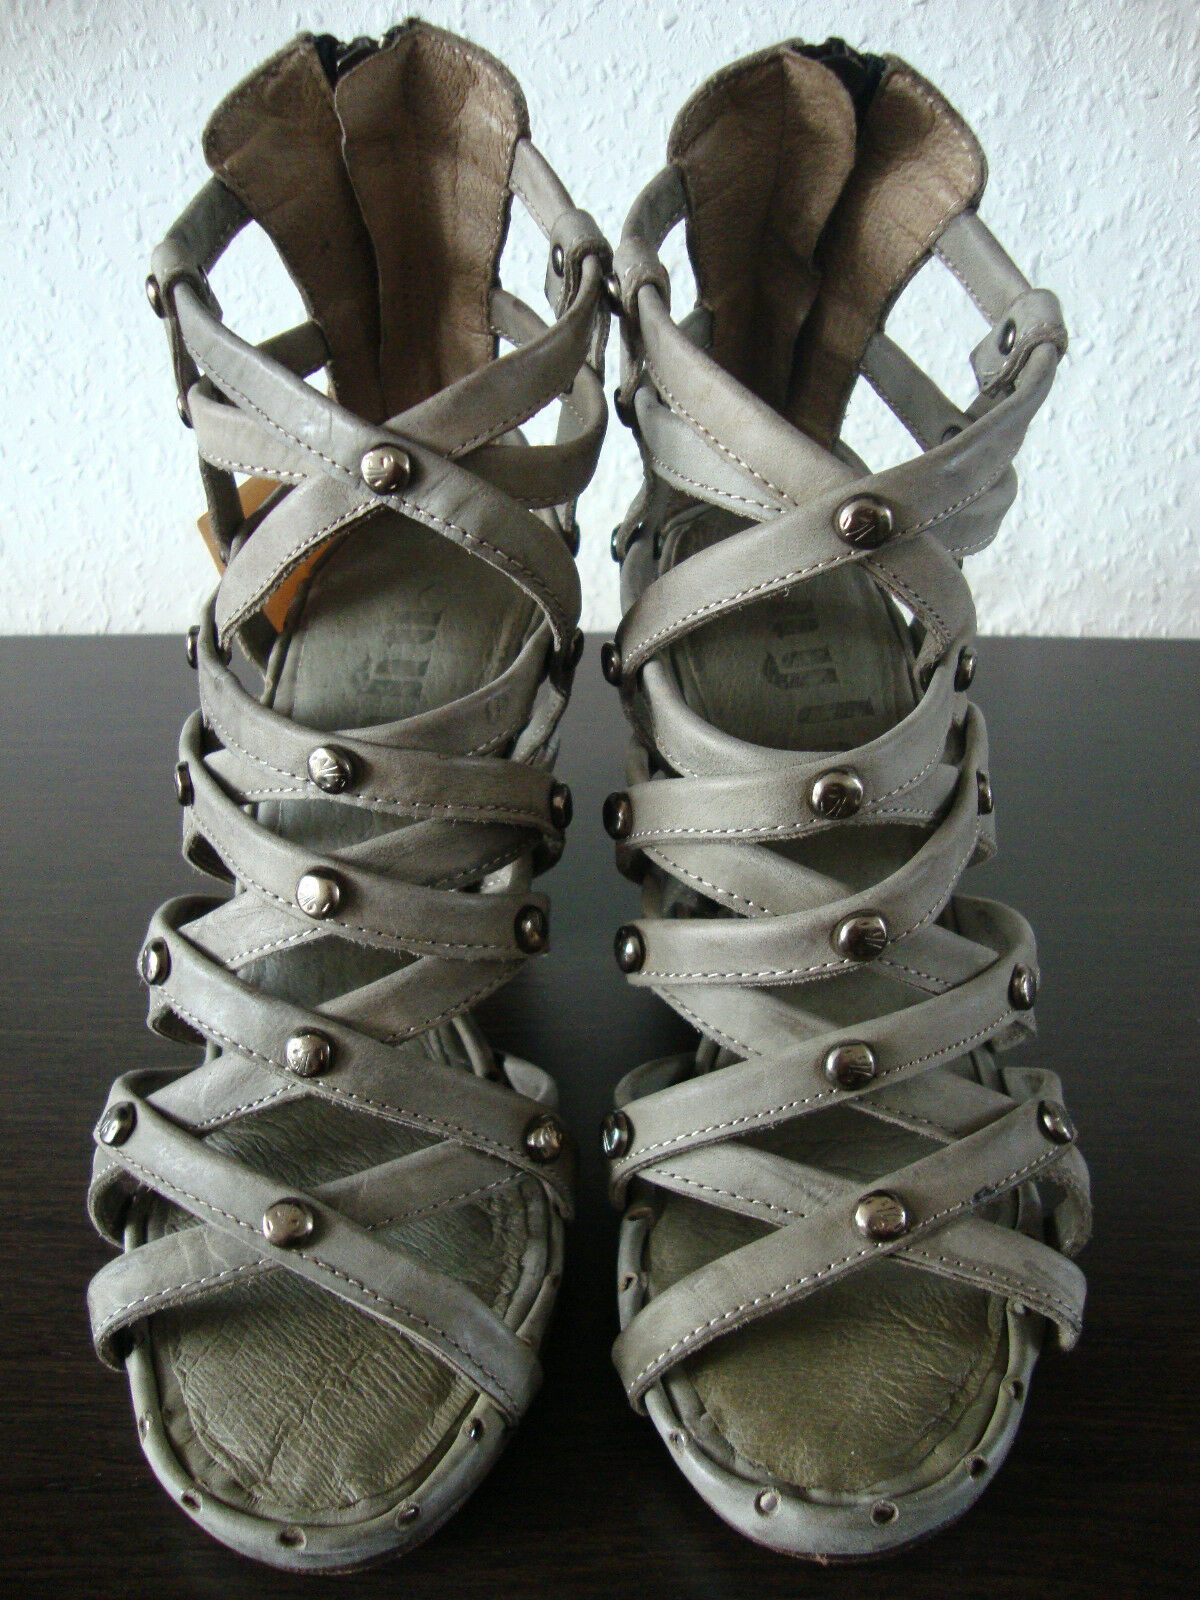 Nylo  Oyster Gladiator Roman Sandals shoes Womens Sandals Leather Size 36 NEW